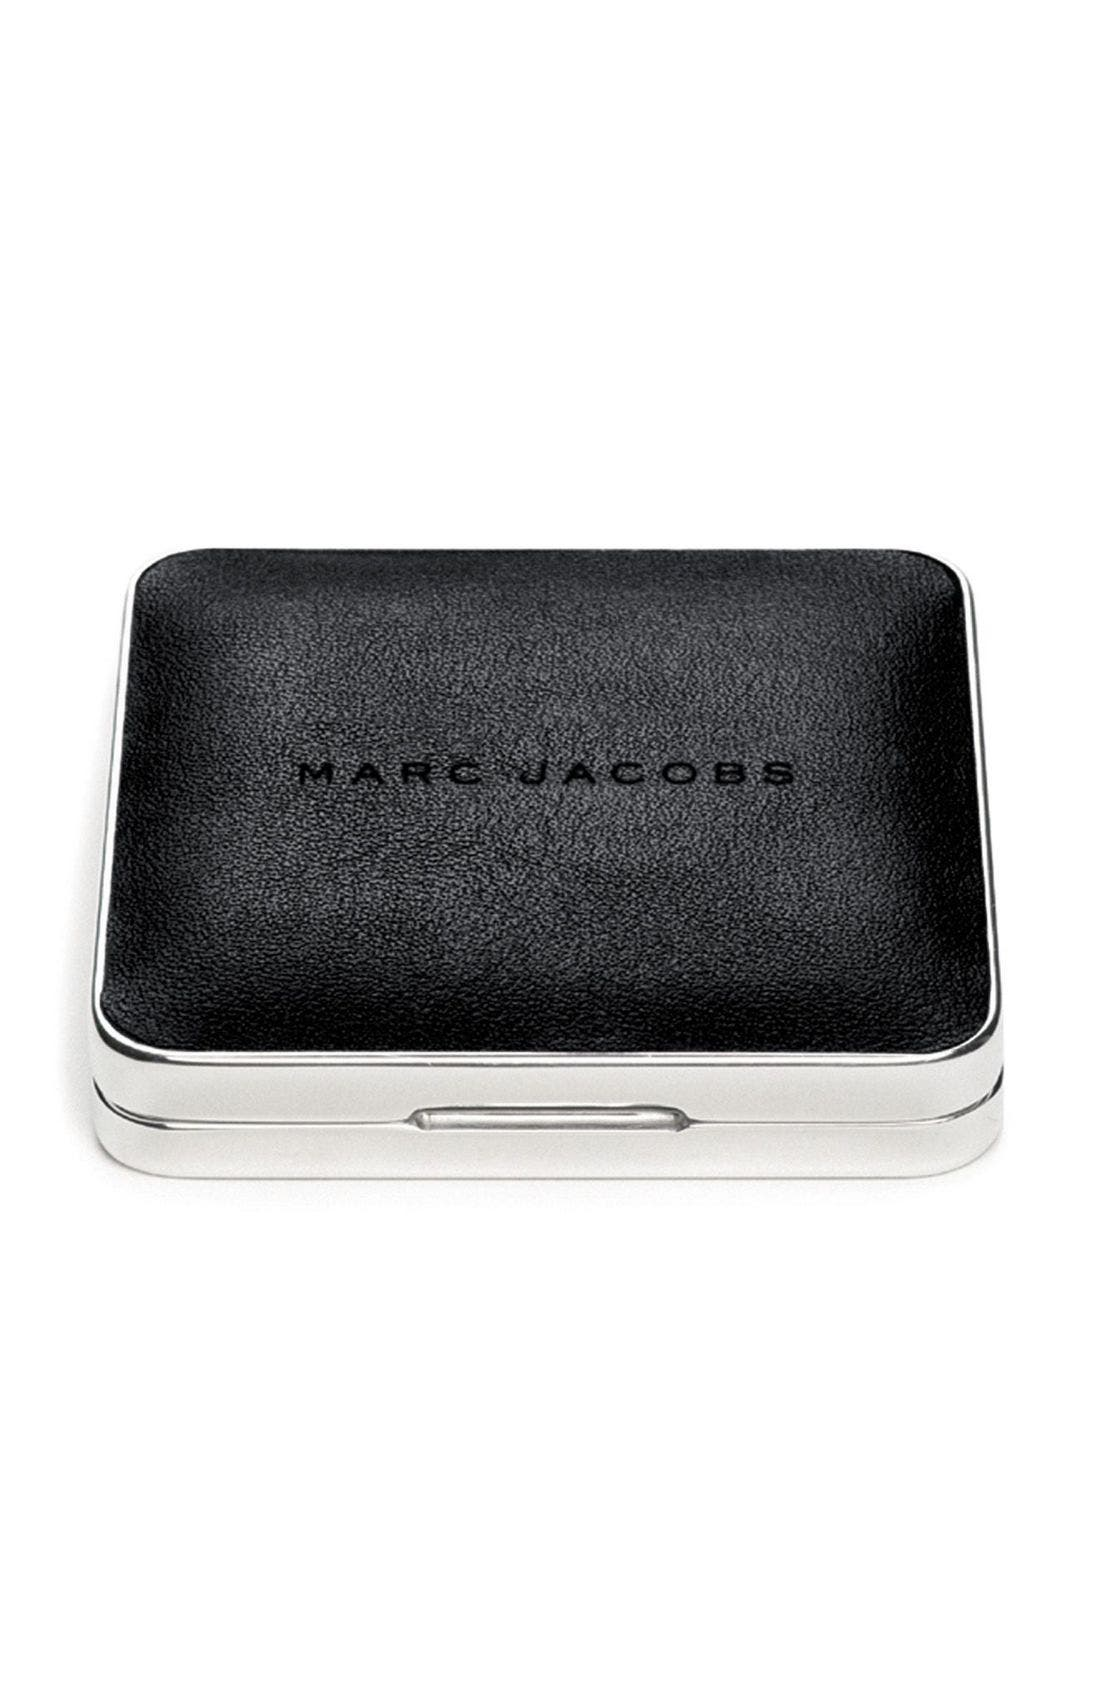 Main Image - MARC JACOBS WOMAN Perfume Solid Compact